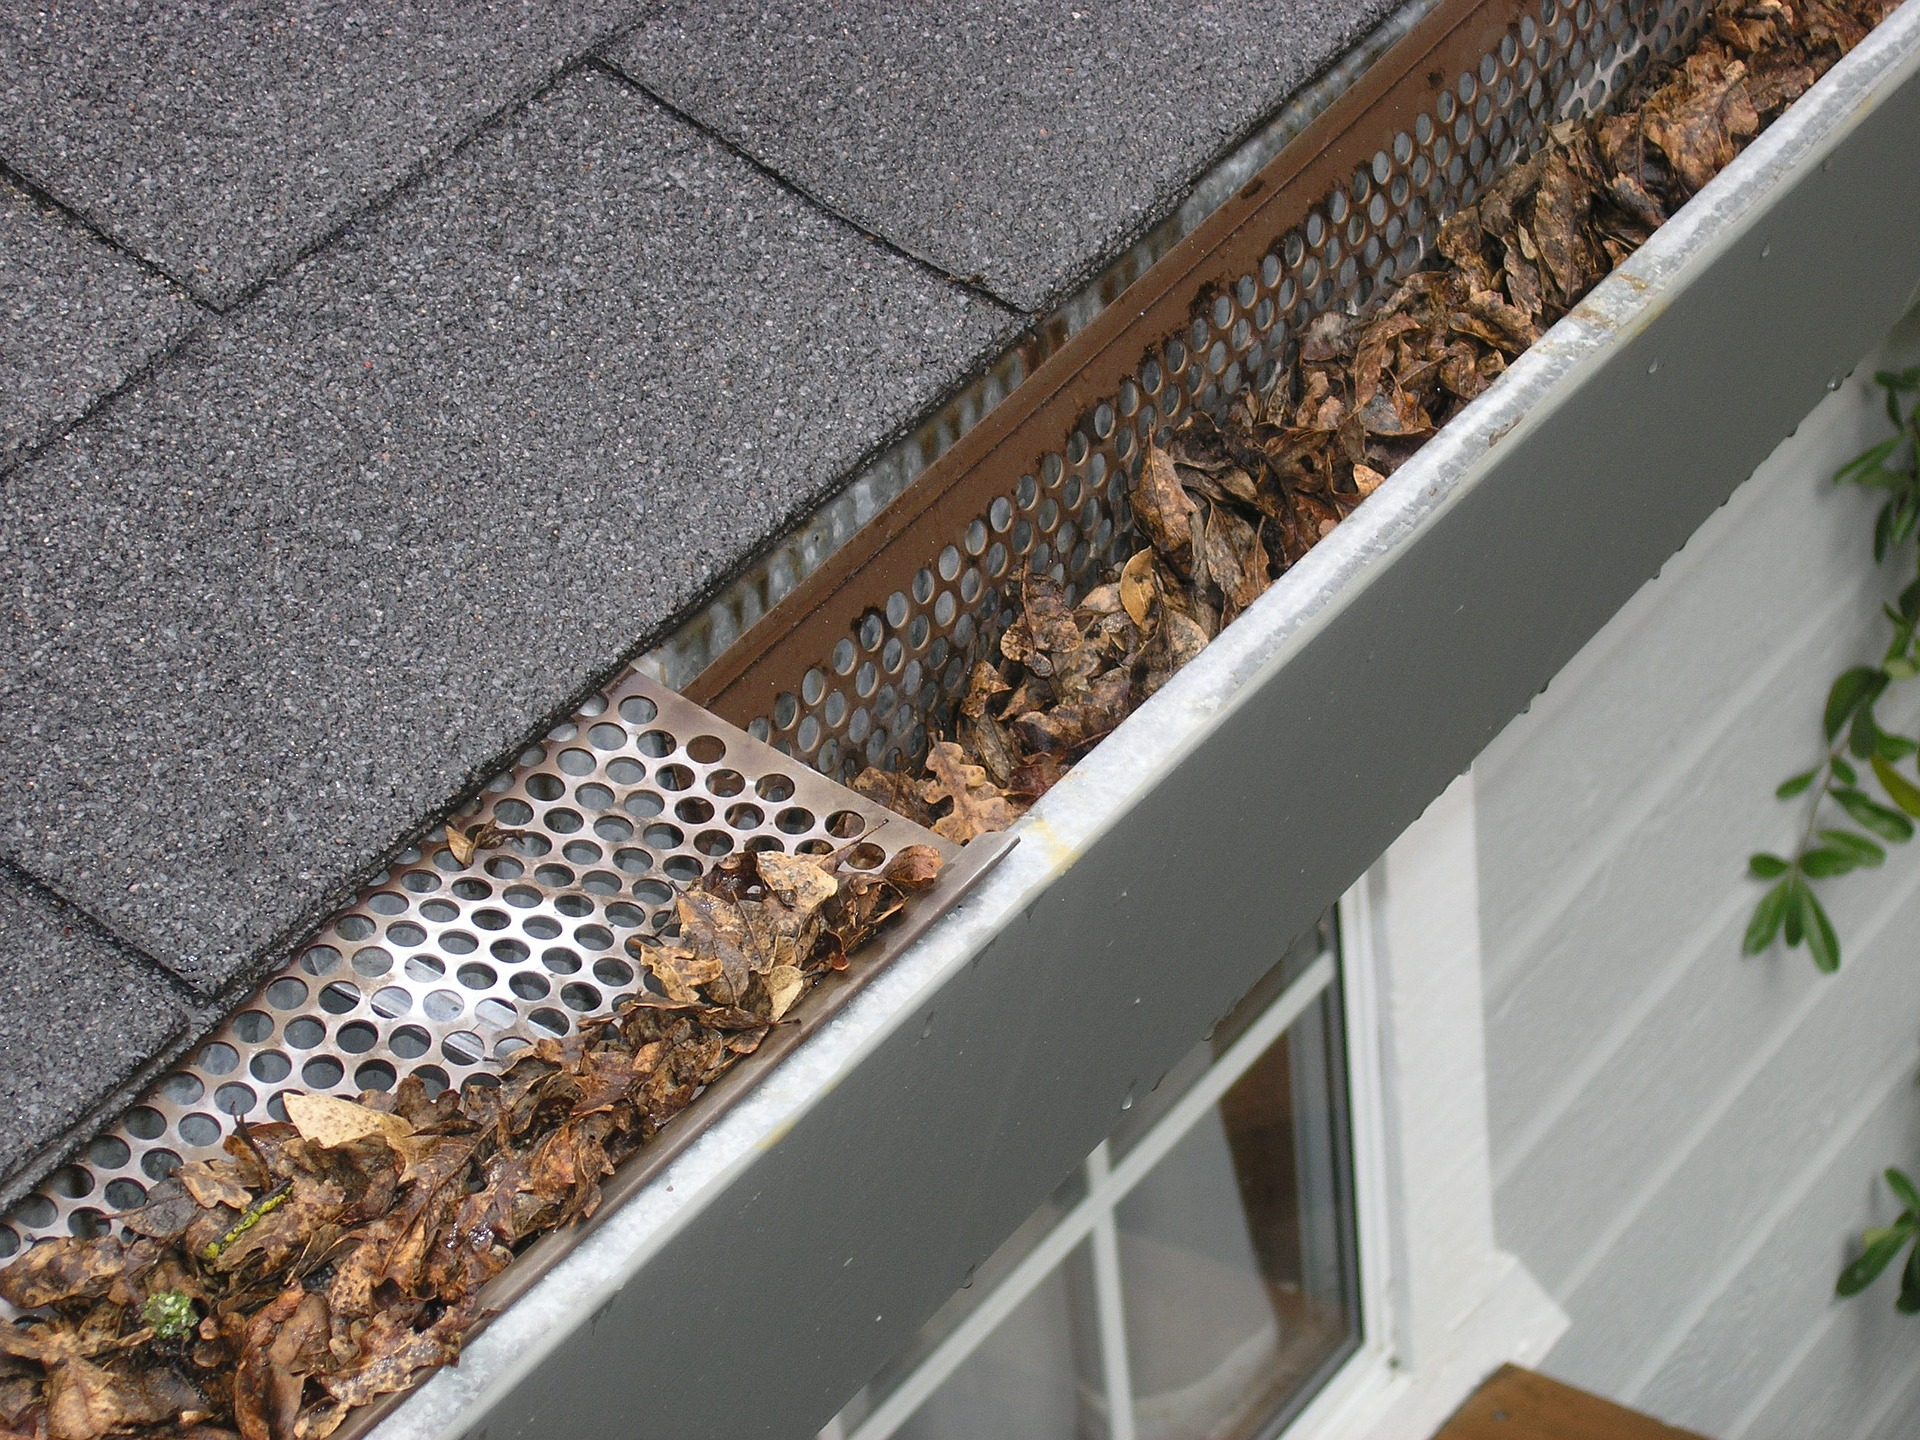 Gutter Cleaning Services- Newark, Ohio 43055